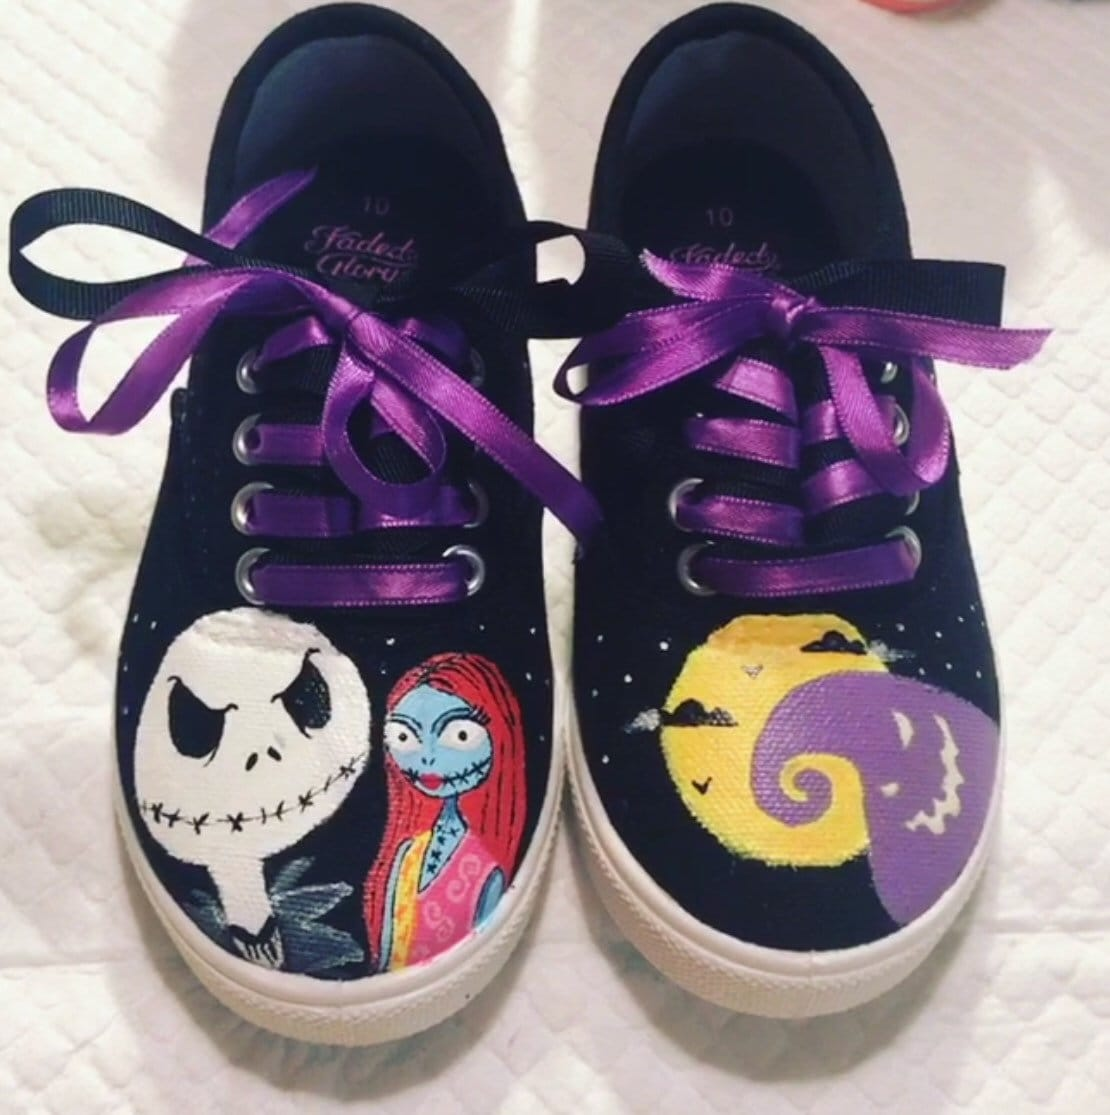 Nightmare before Christmas hand painted shoes | Etsy